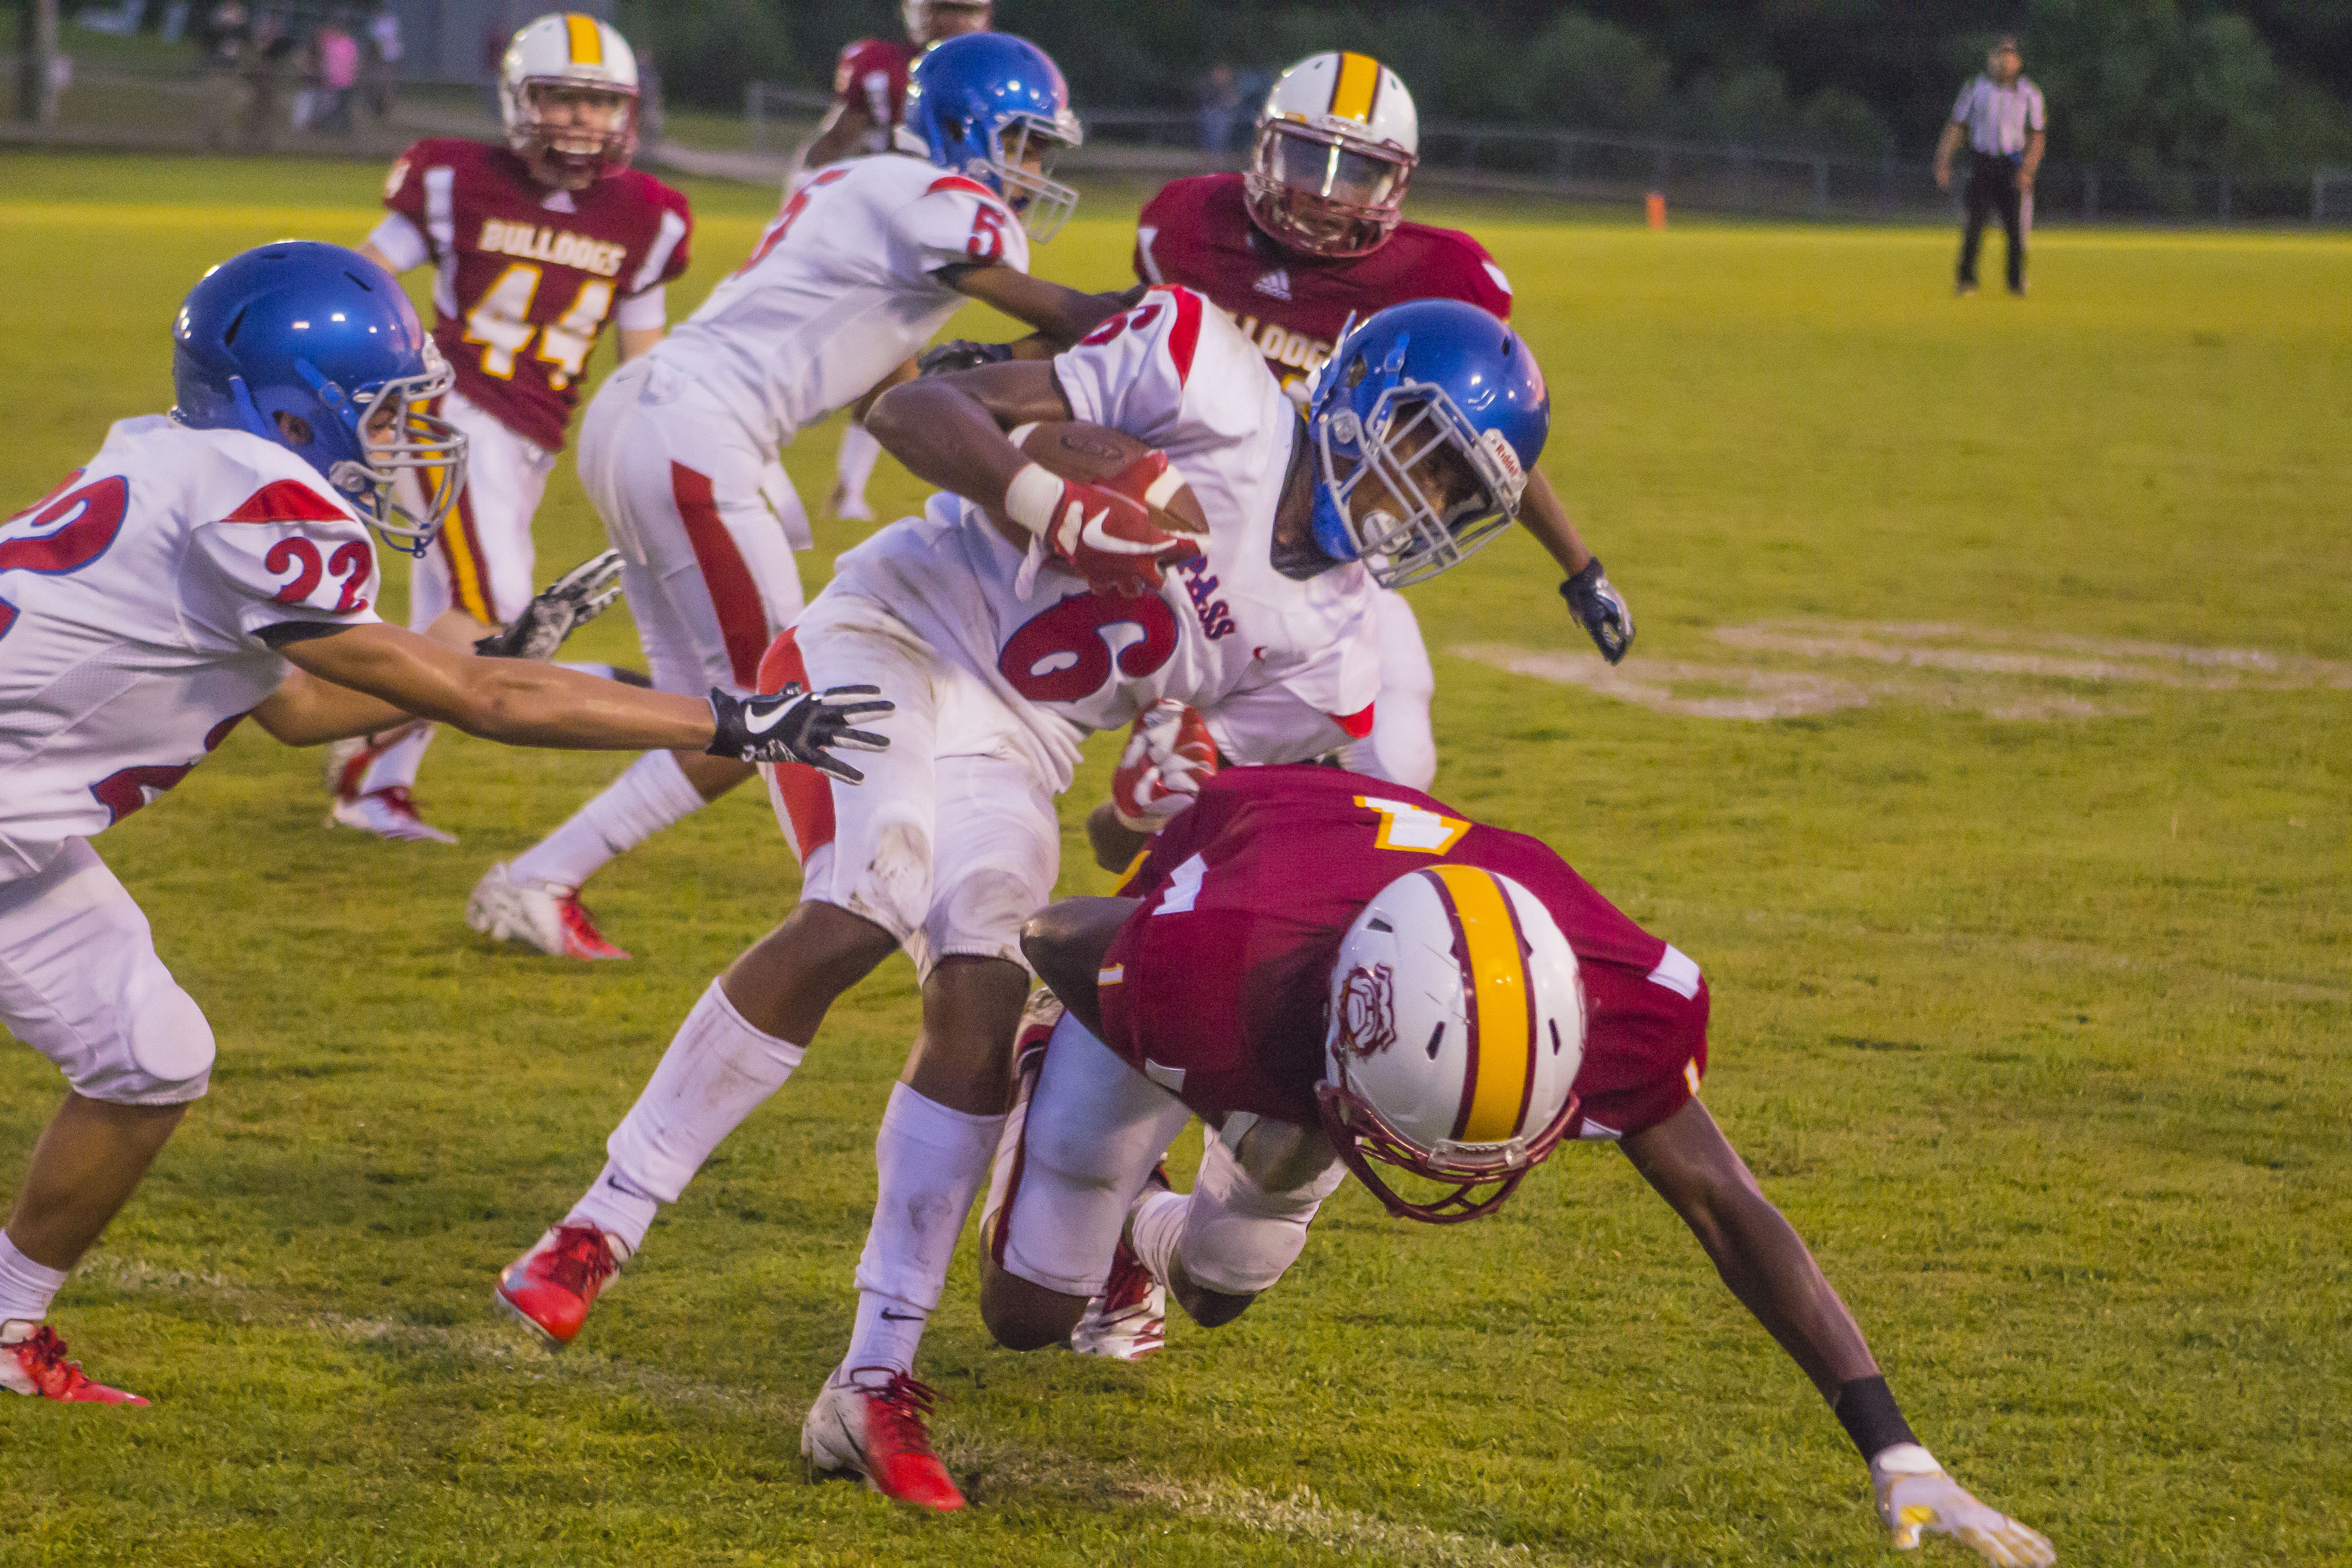 PIRATES DISMANTLED BY BULLDOGS AGAIN